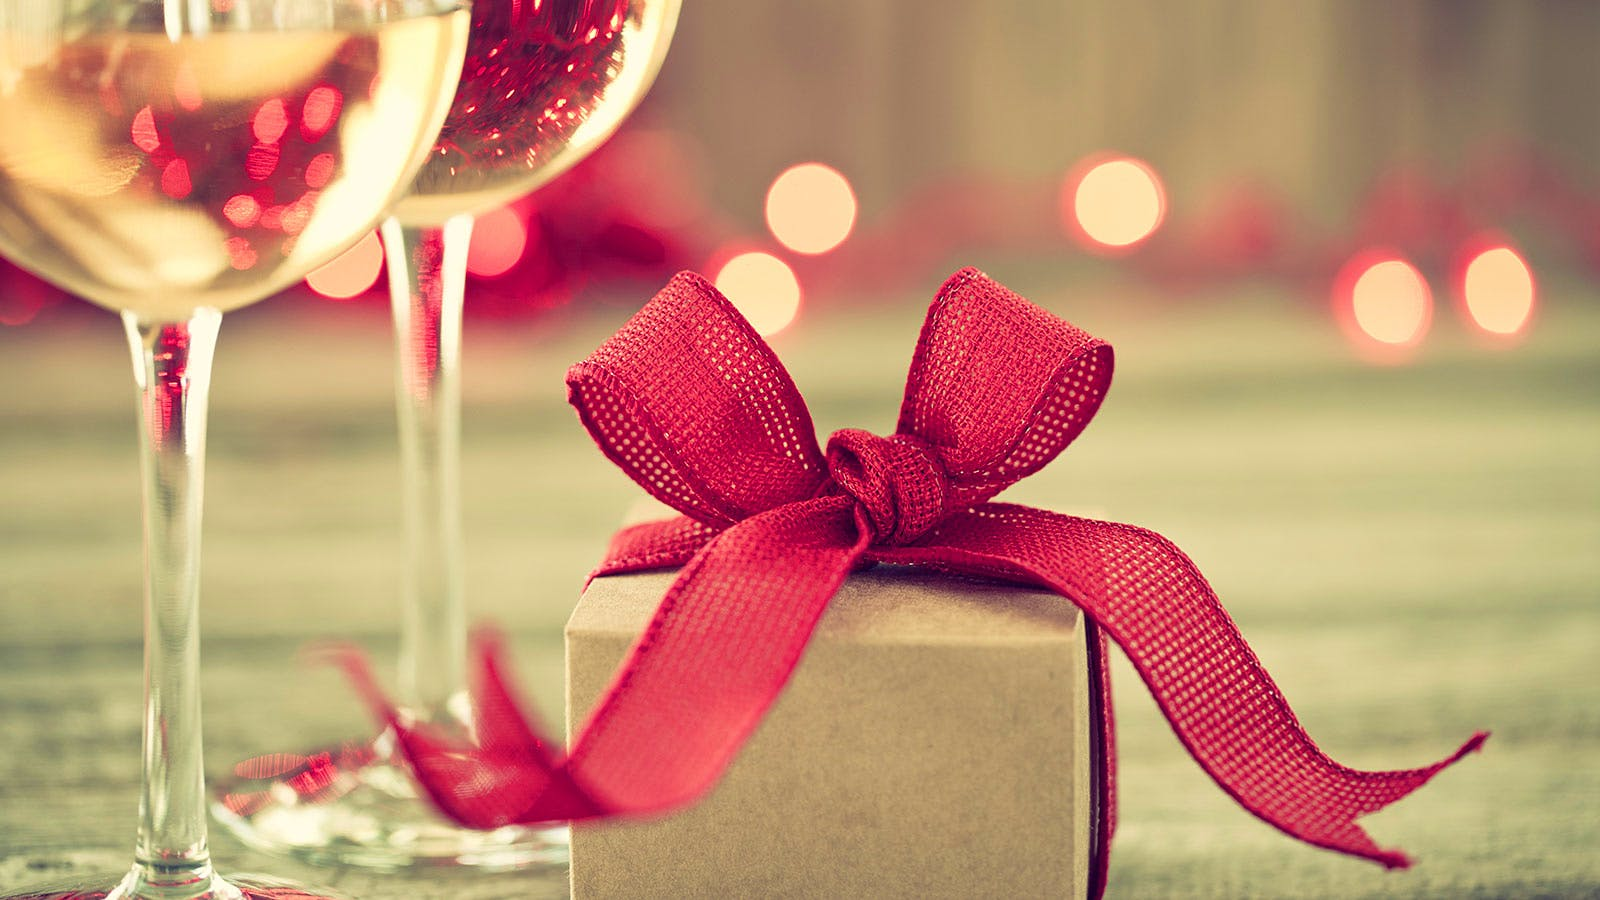 8 Gifts for Your Favorite Wine Lover